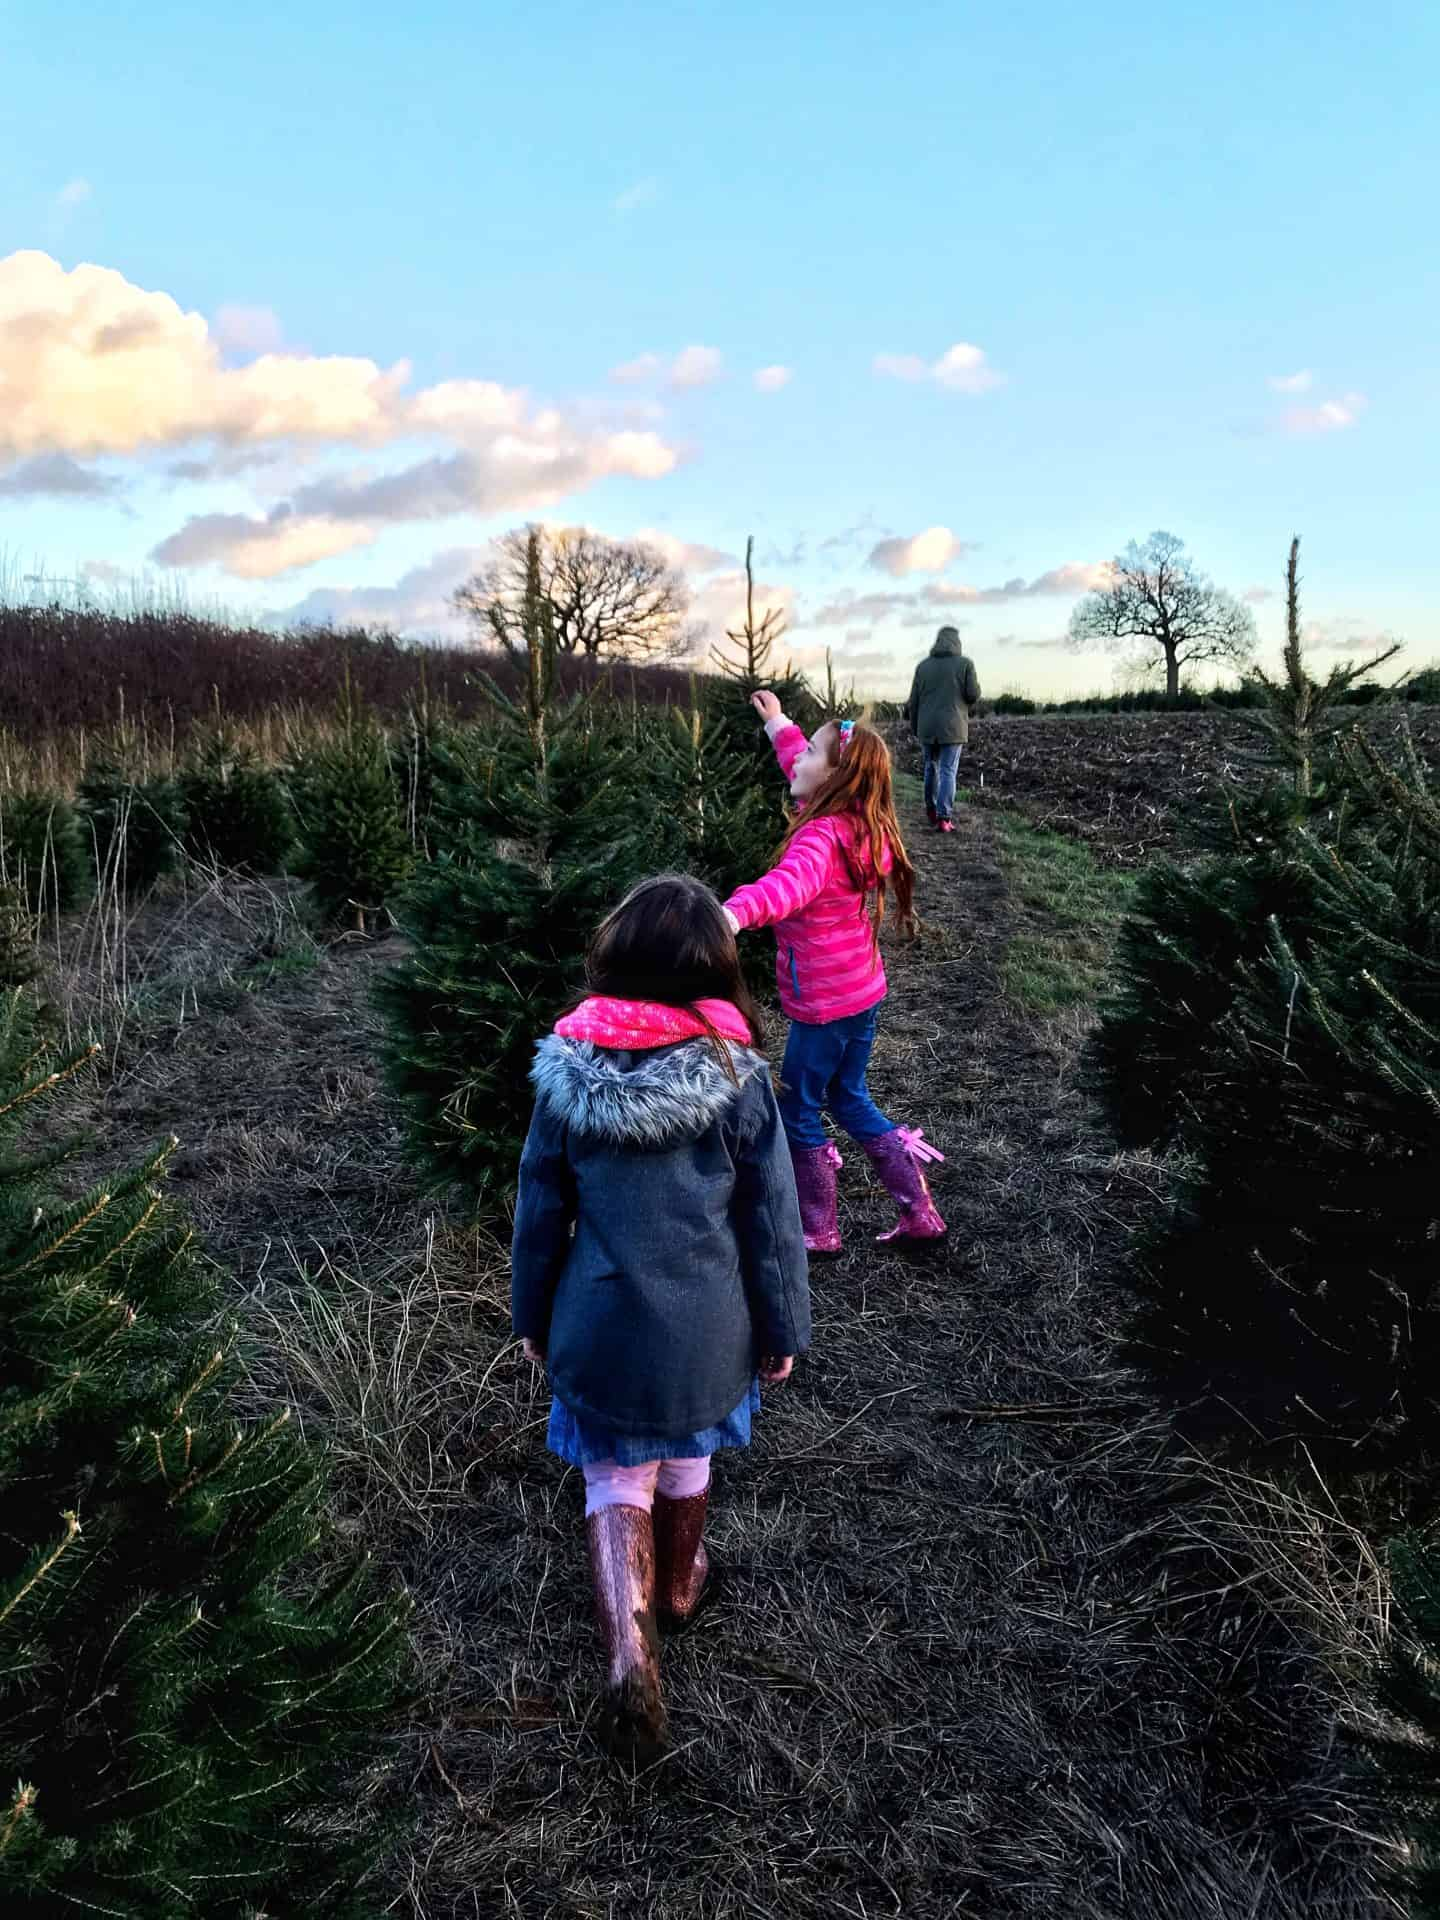 Looking for our ideal Christmas Tree